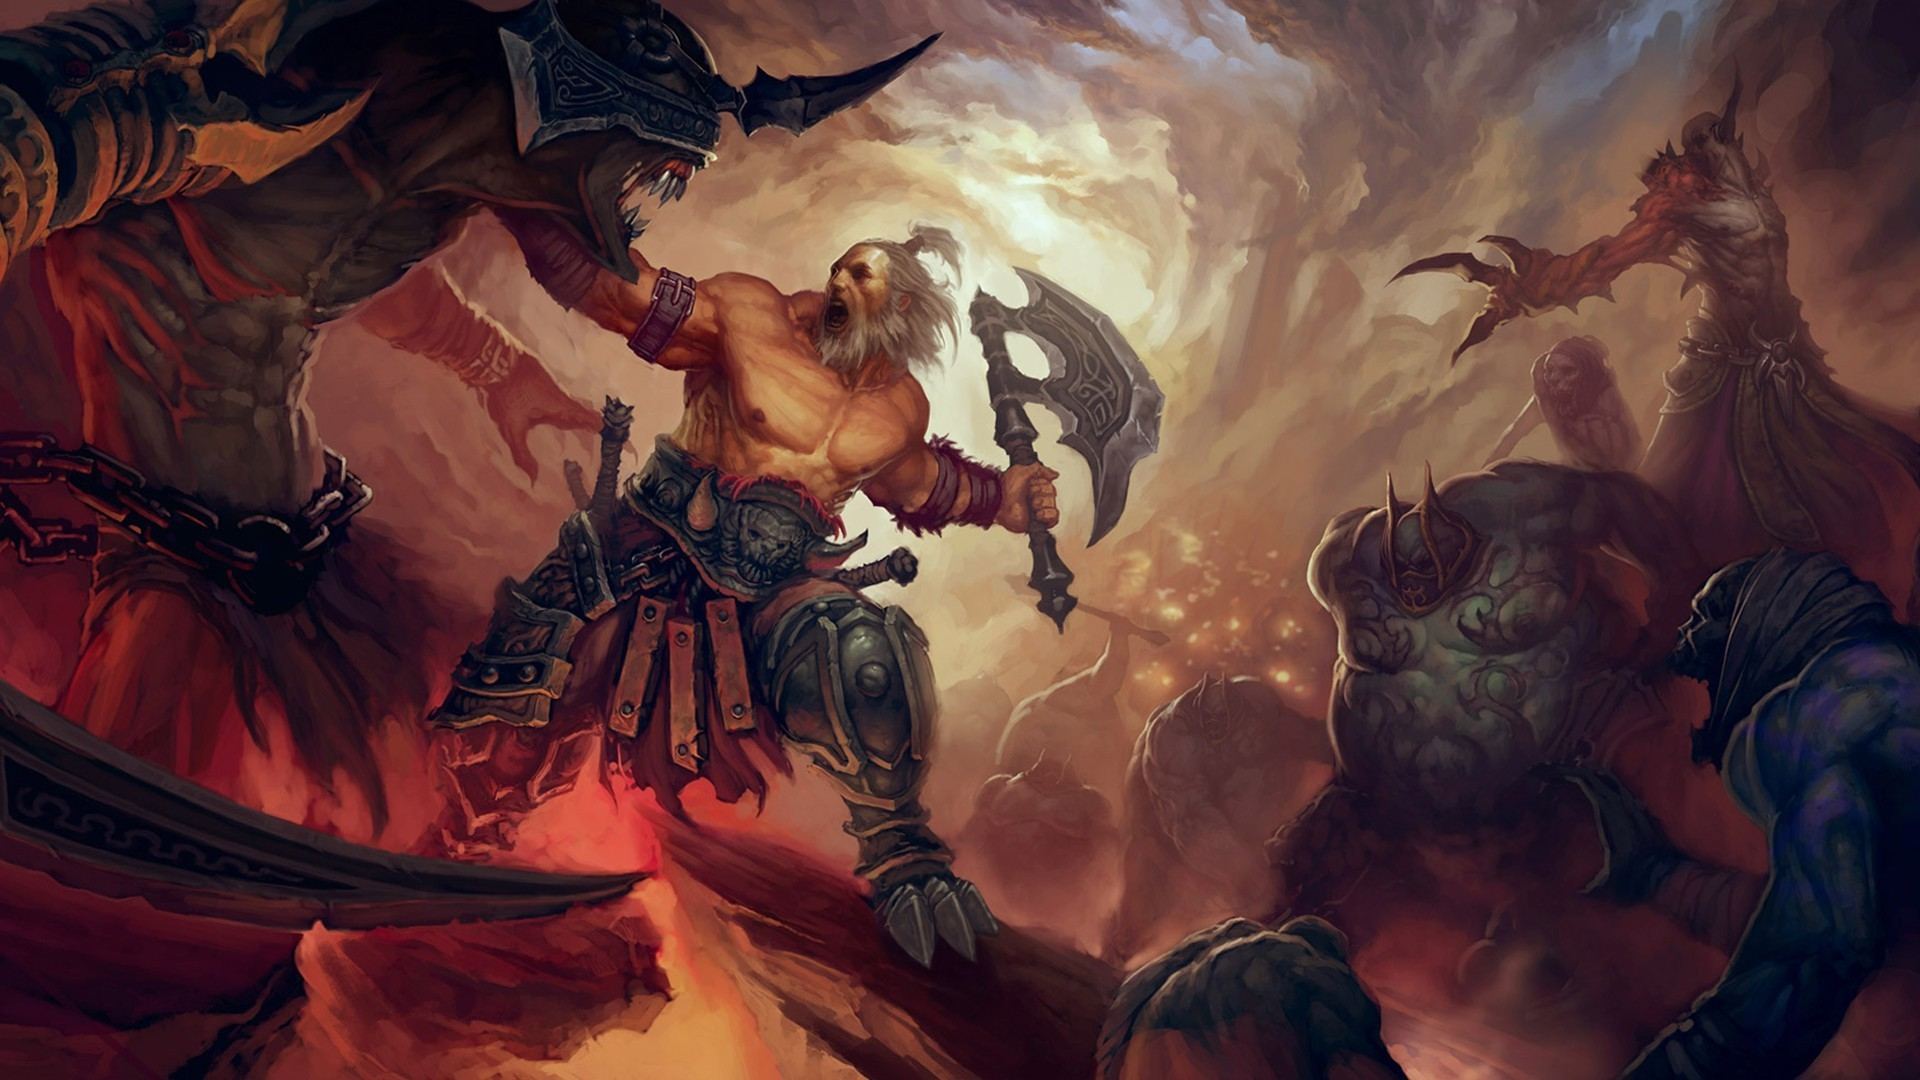 1920x1080 painting, Illustration, Fantasy Art, Diablo III, Barbarian Wallpapers HD /  Desktop and Mobile Backgrounds